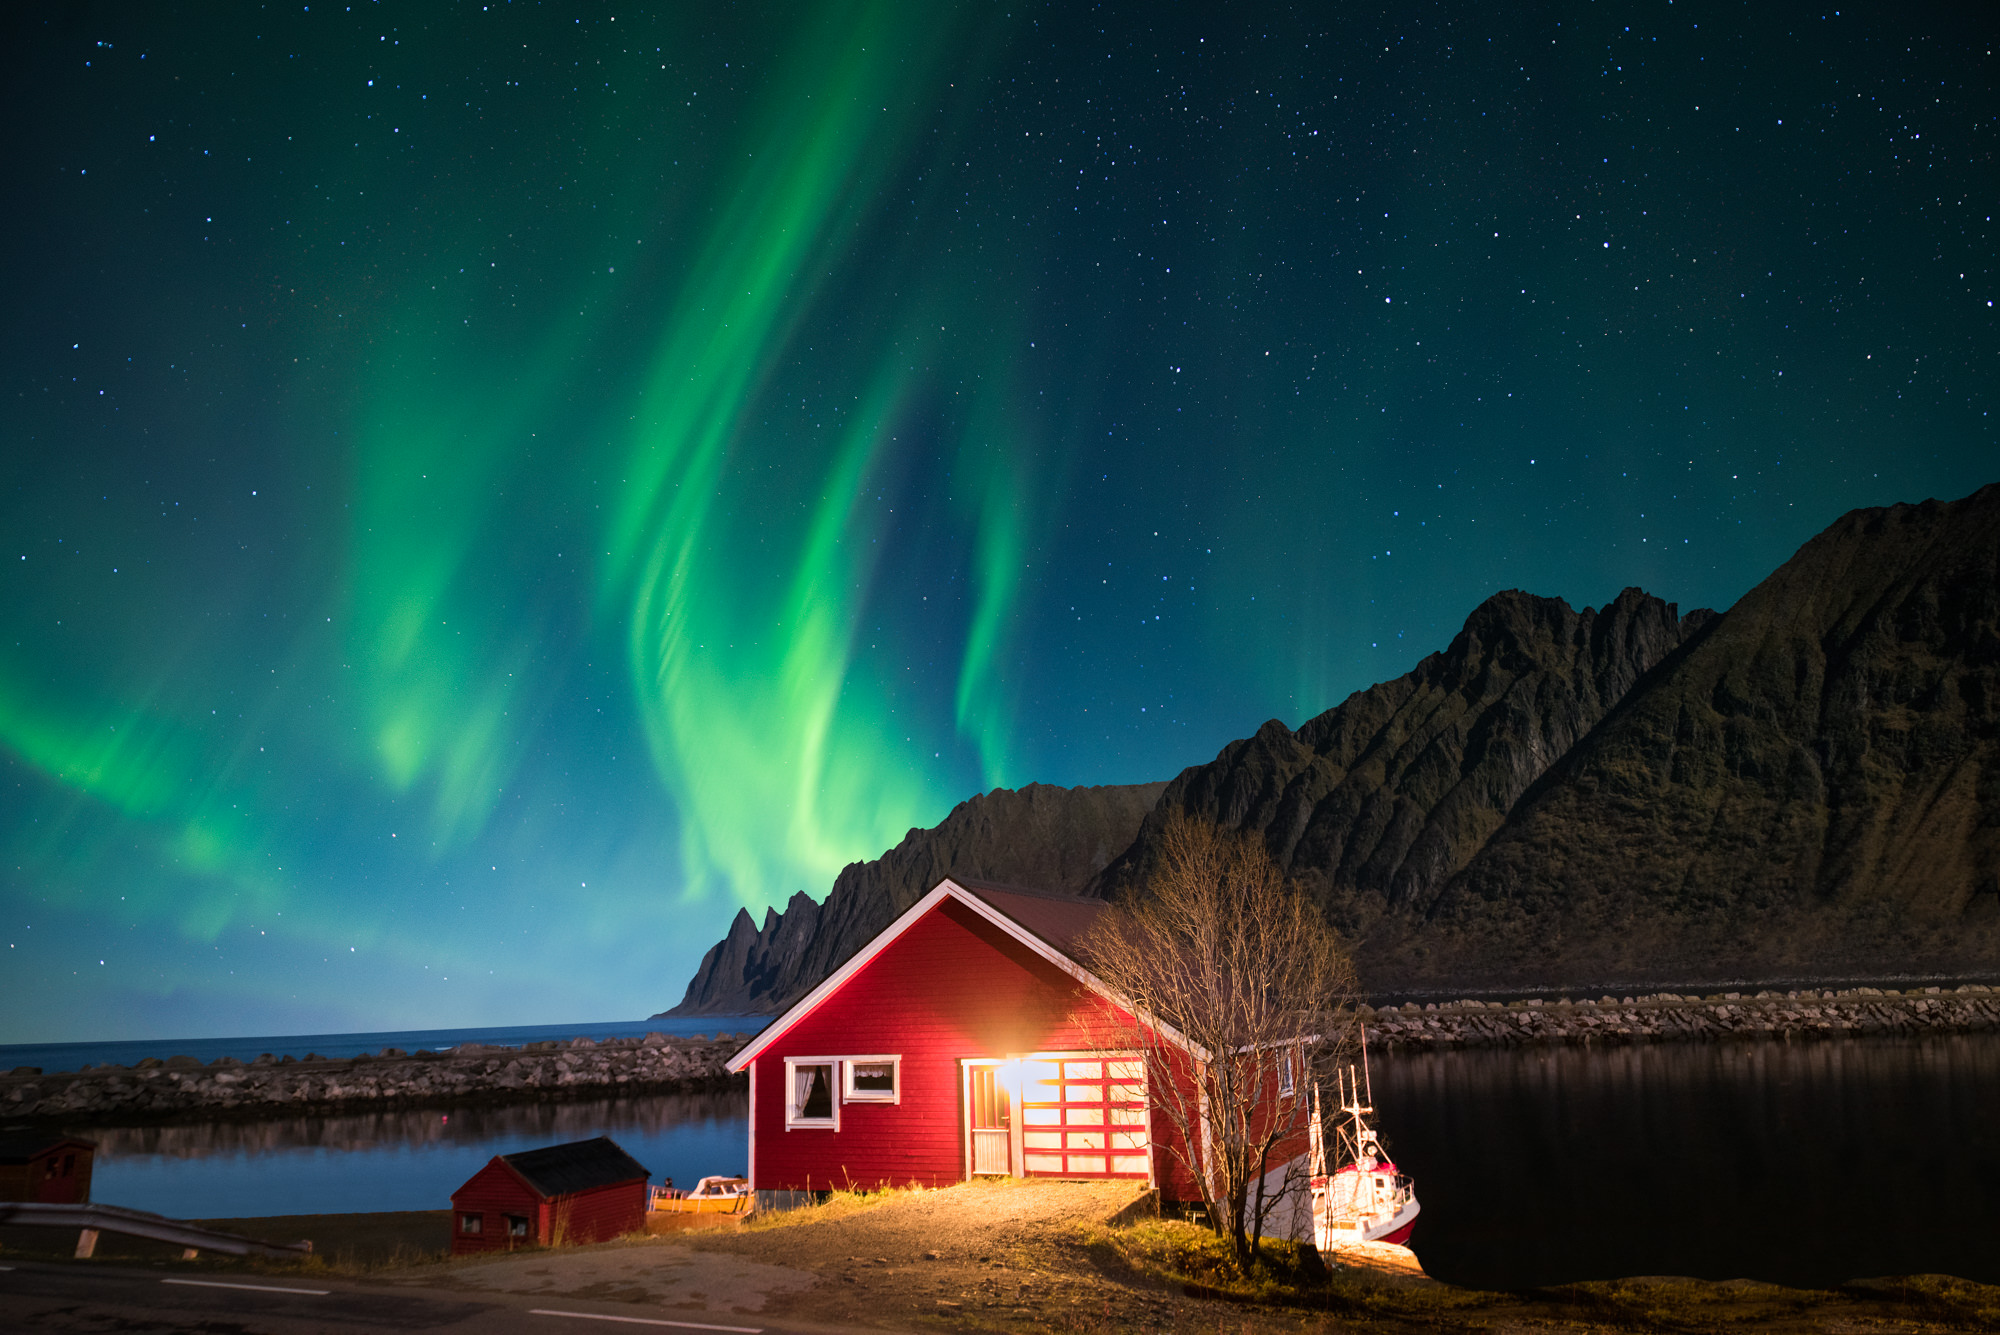 The northern lights dance through the sky above a cabin